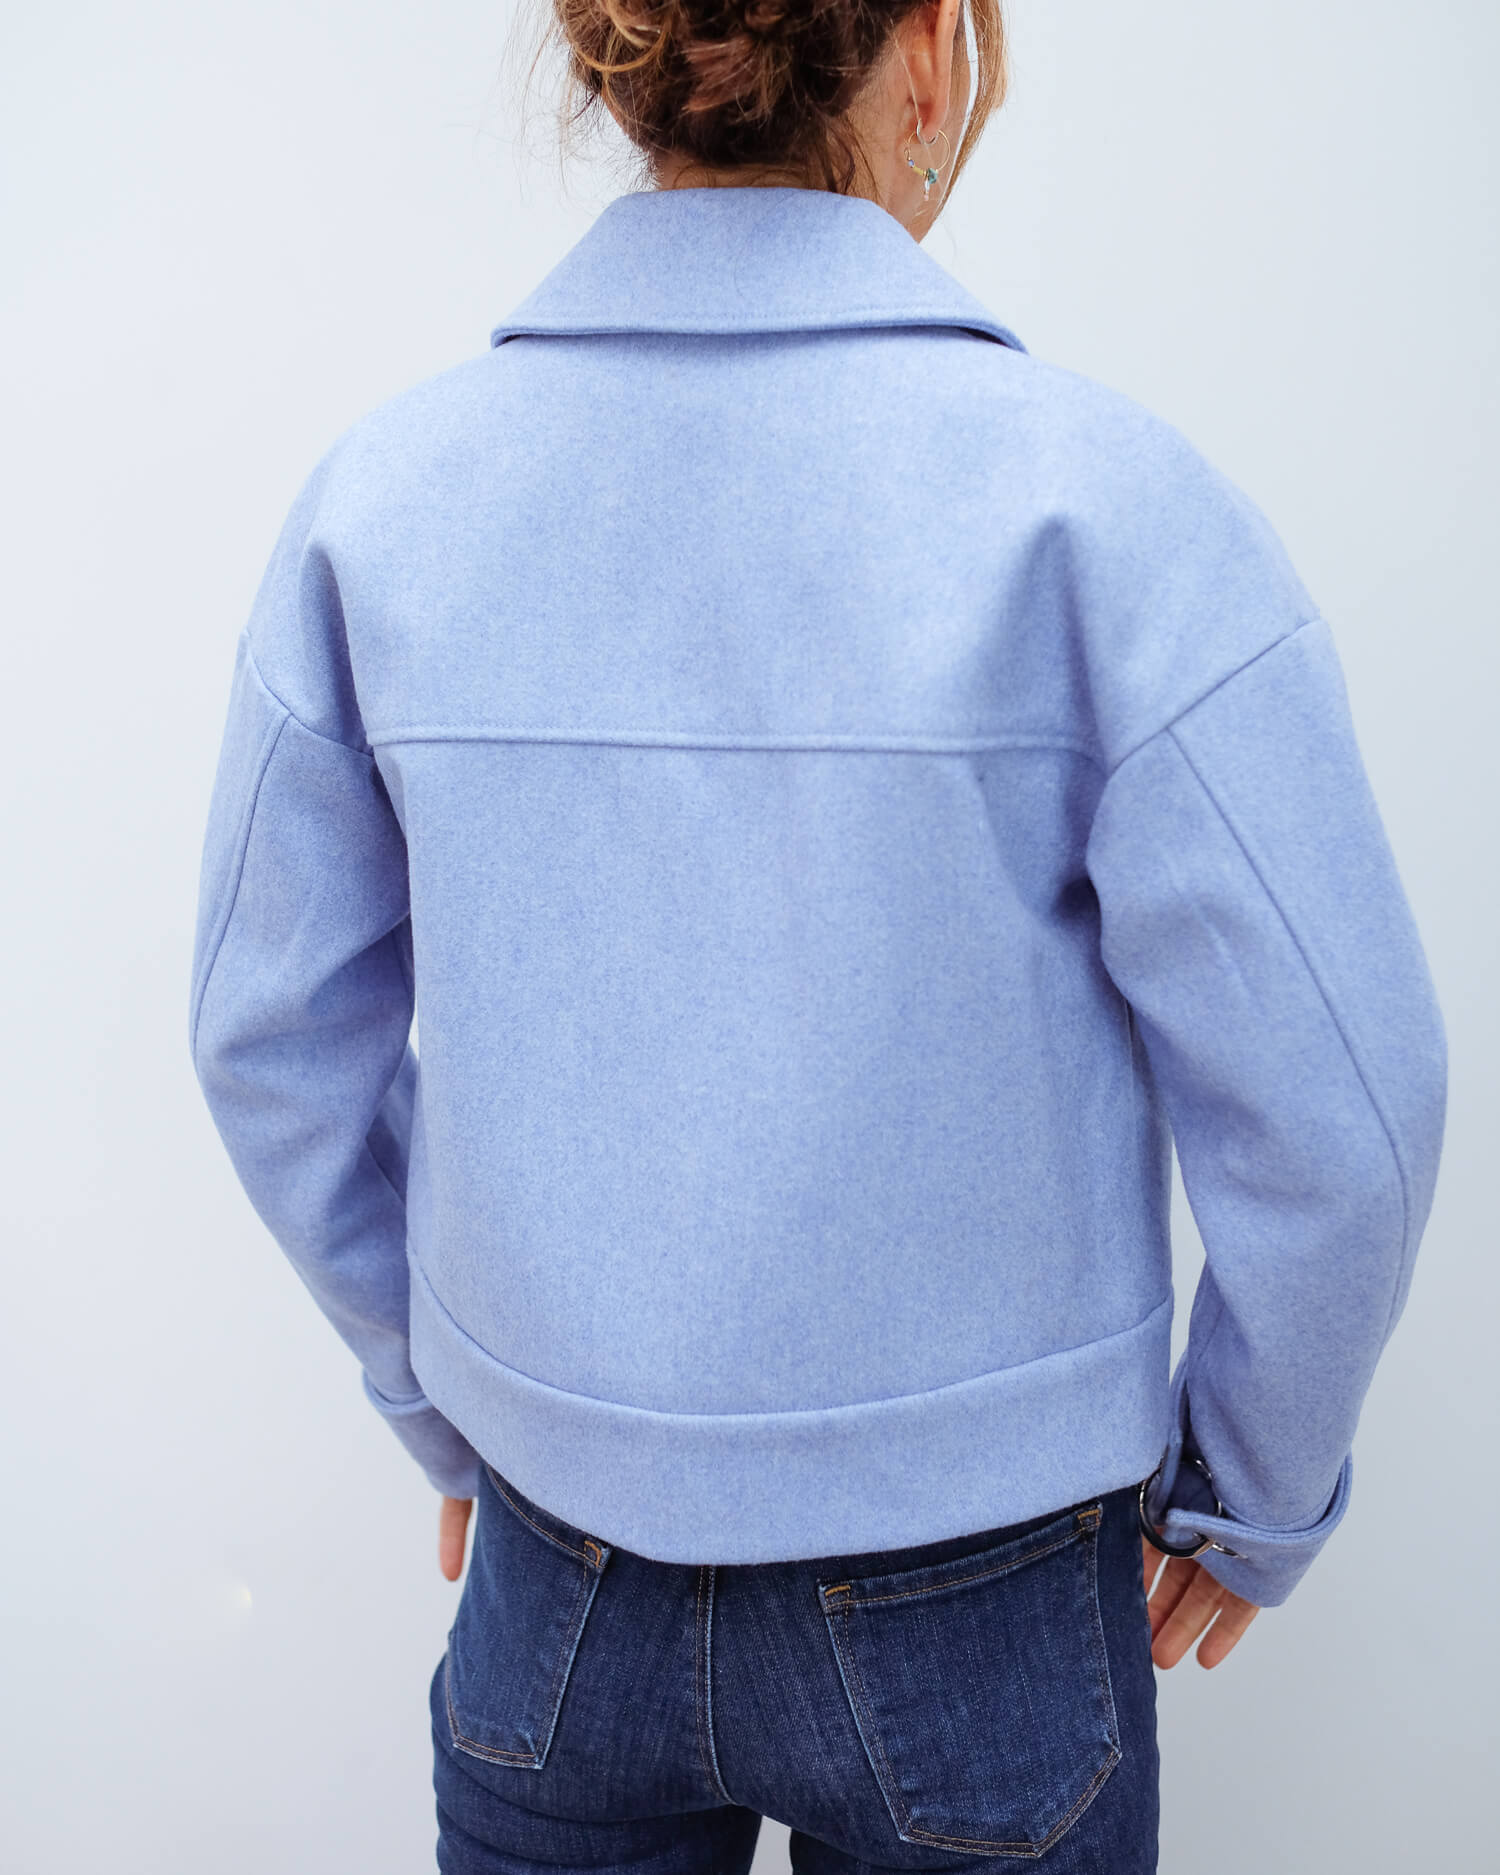 SLF Betty wool jacket in blue melange